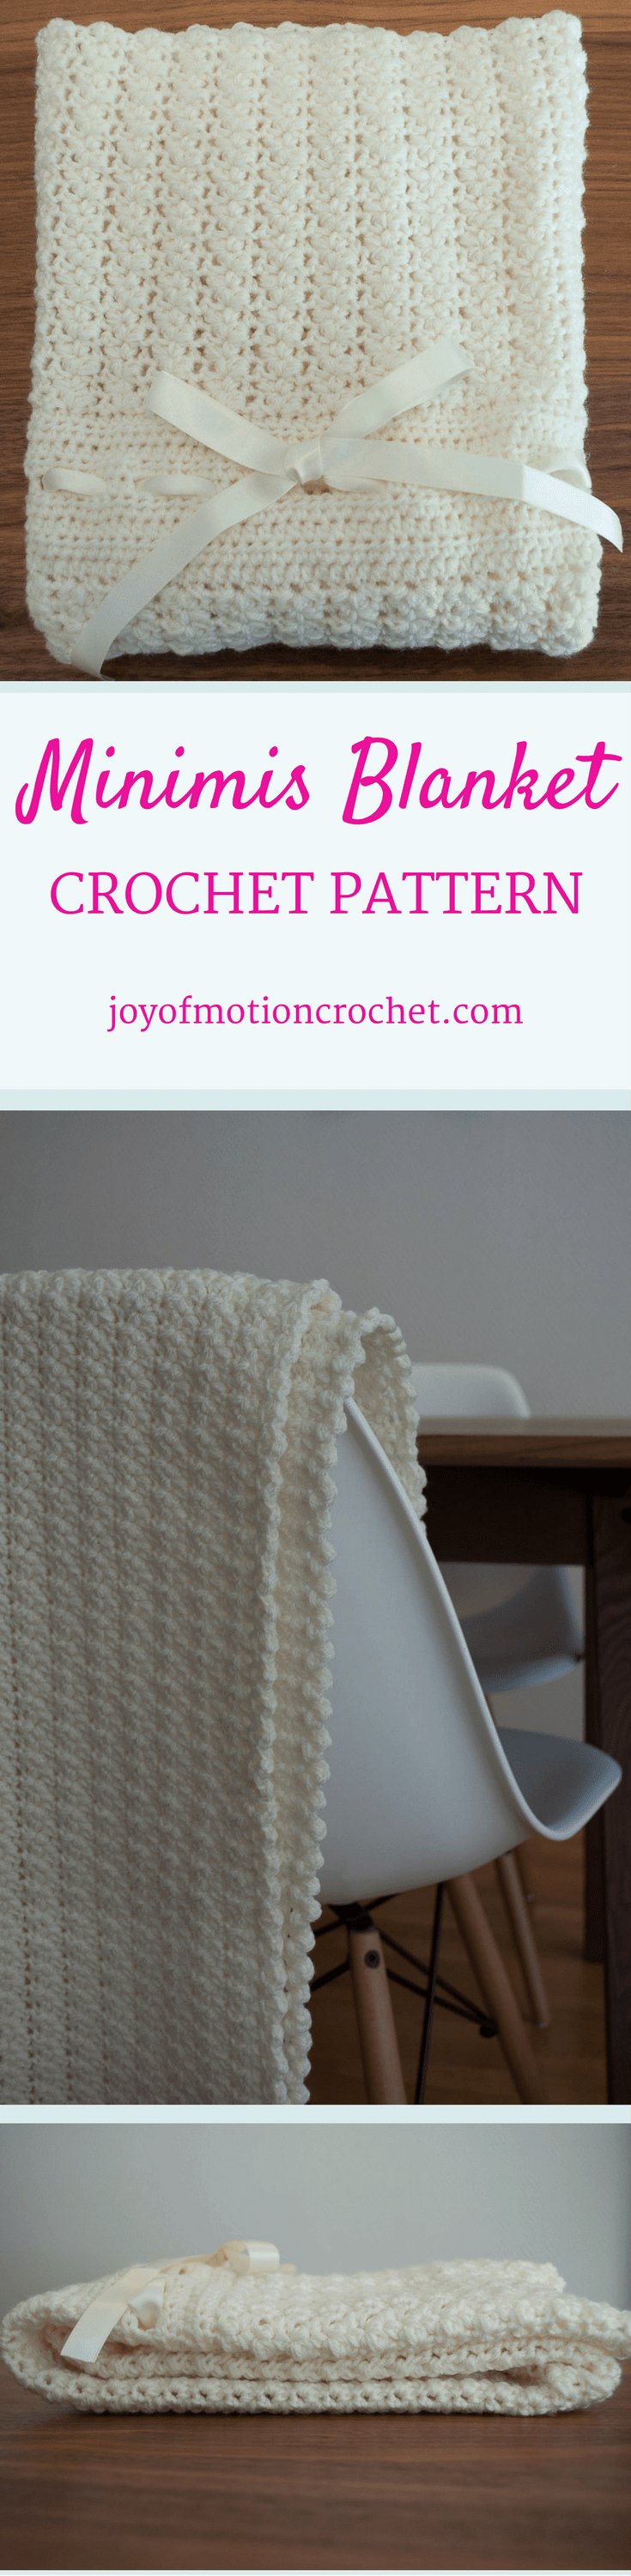 The Minimis Blanket - a crochet pattern. Crochet pattern for a baby blanket. Perfect for any stroller or newborn child. Easy to modify to make longer or wider if you want. Size: One. Baby blanket | stroller blanket | easy crochet pattern | joy of motion design | crochet pattern for a mother | newborn crochet pattern | gift crochet pattern. Click to purchase or repin to save it forever.